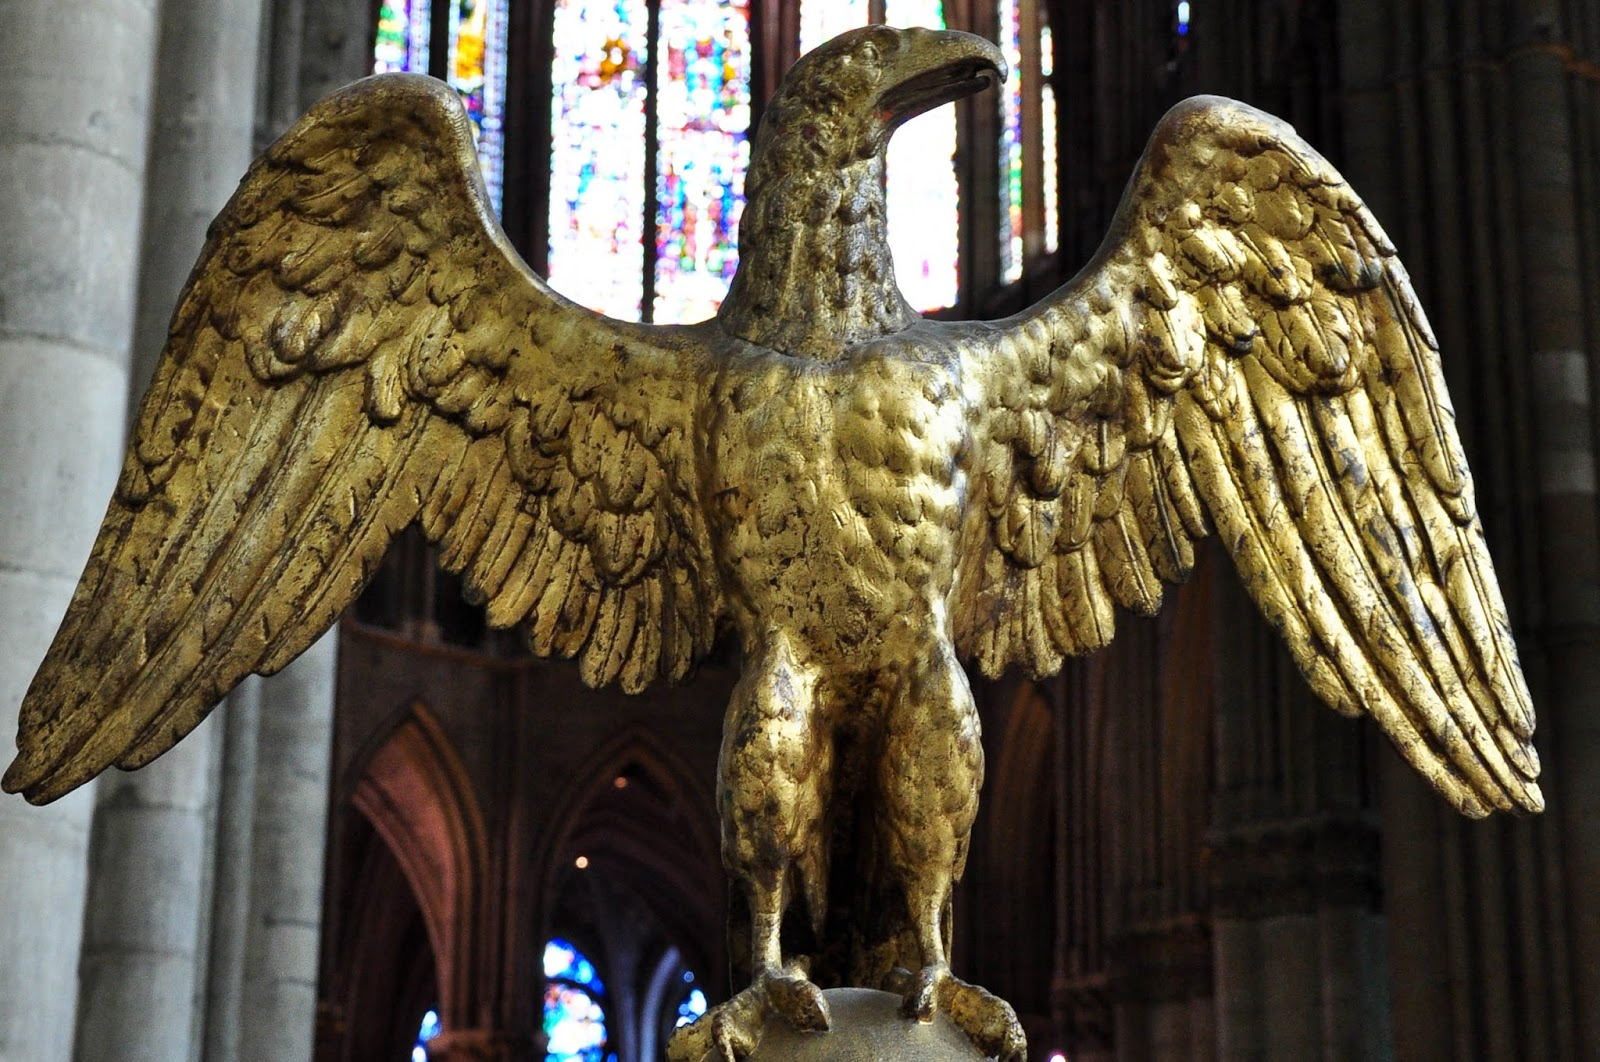 Eagle, Reims Cathedral, Reims, France